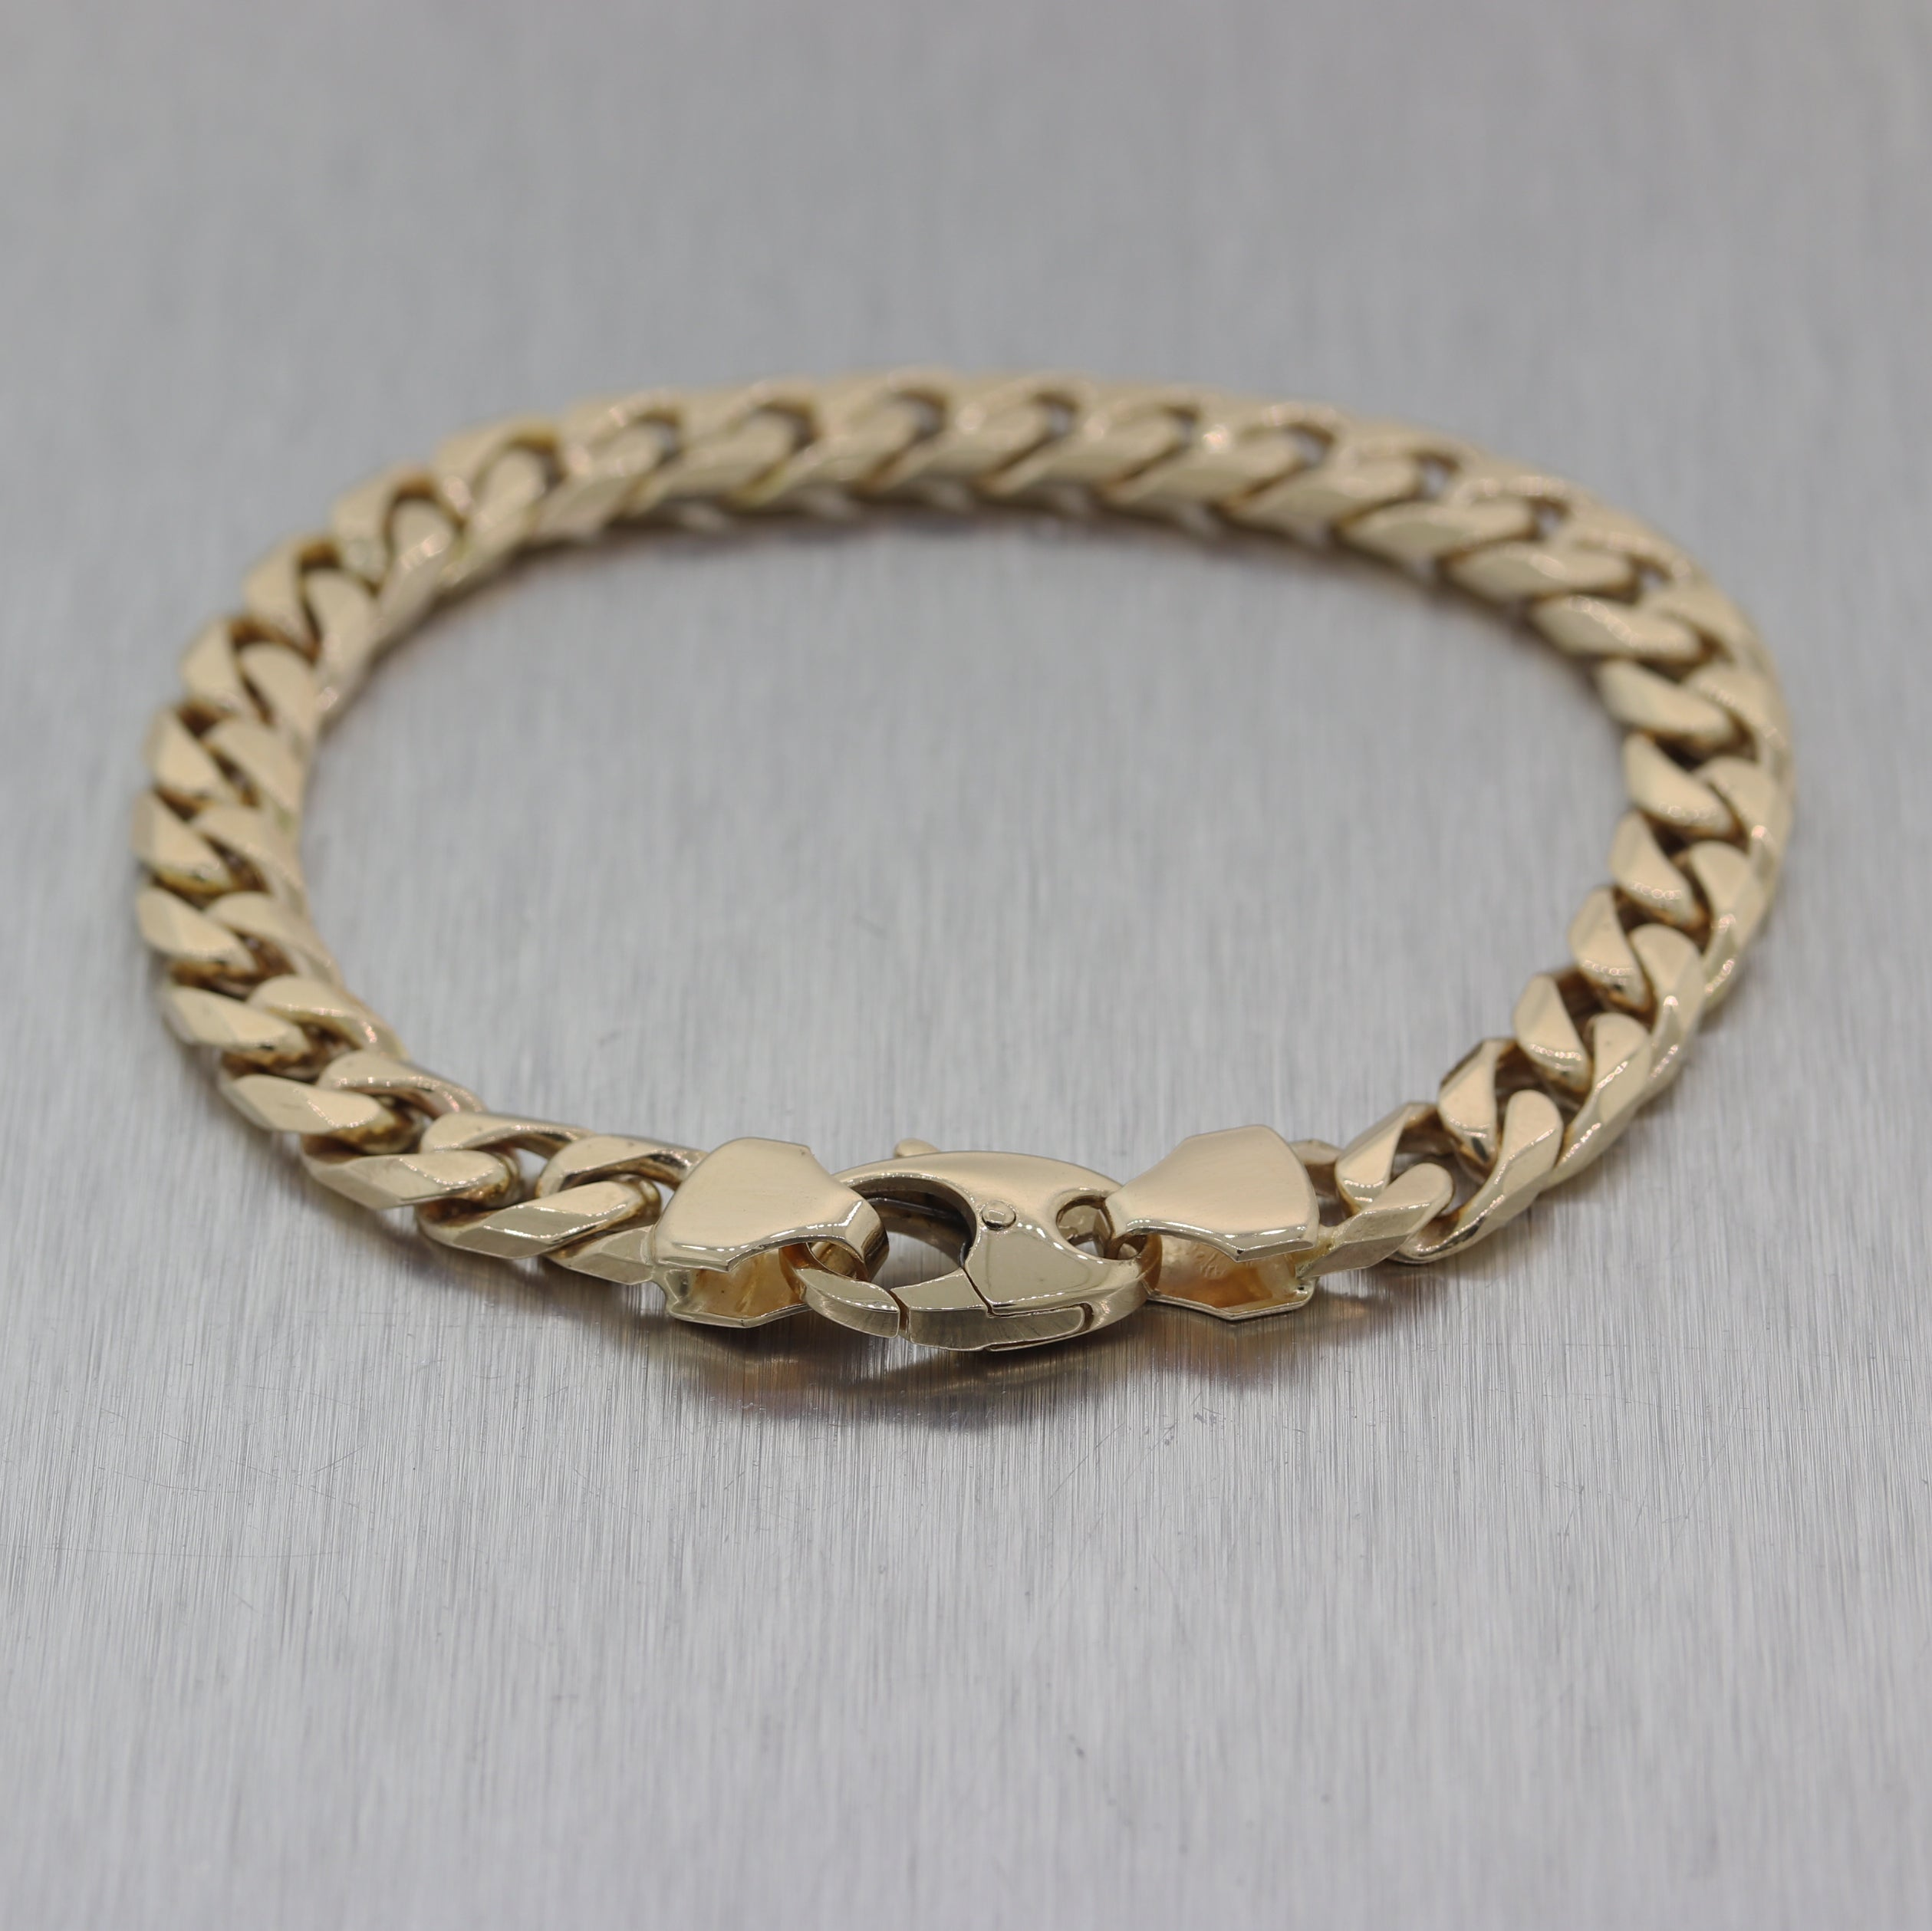 Modern 26.93g 14k Yellow Gold Cuban Curb Link Chain Bracelet